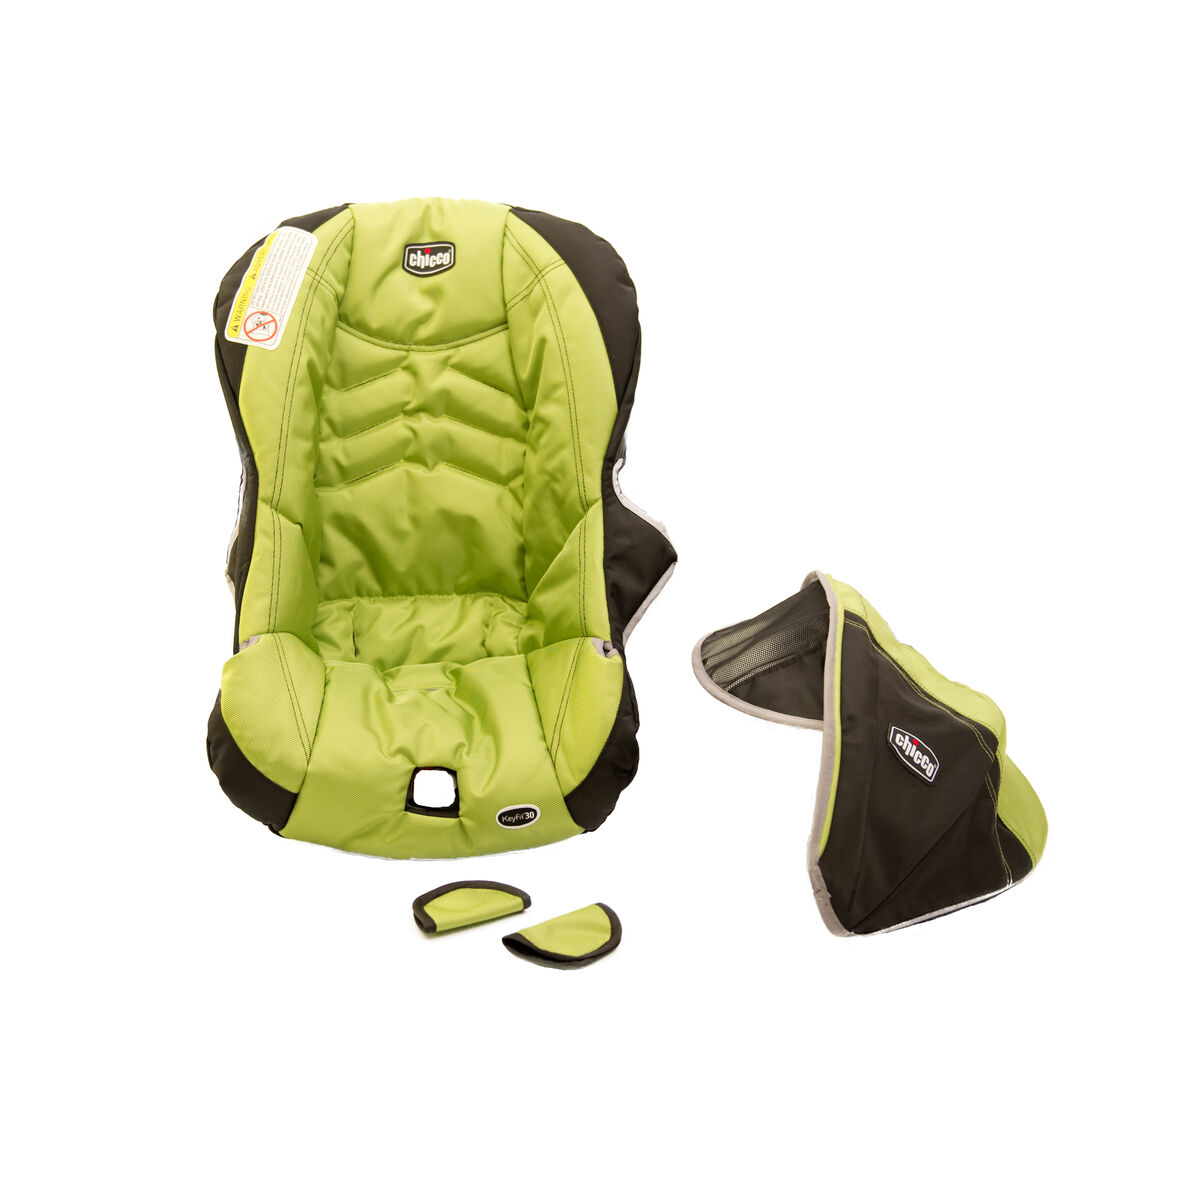 Keyfit 30 Surge Seat Cover Canopy And Pads